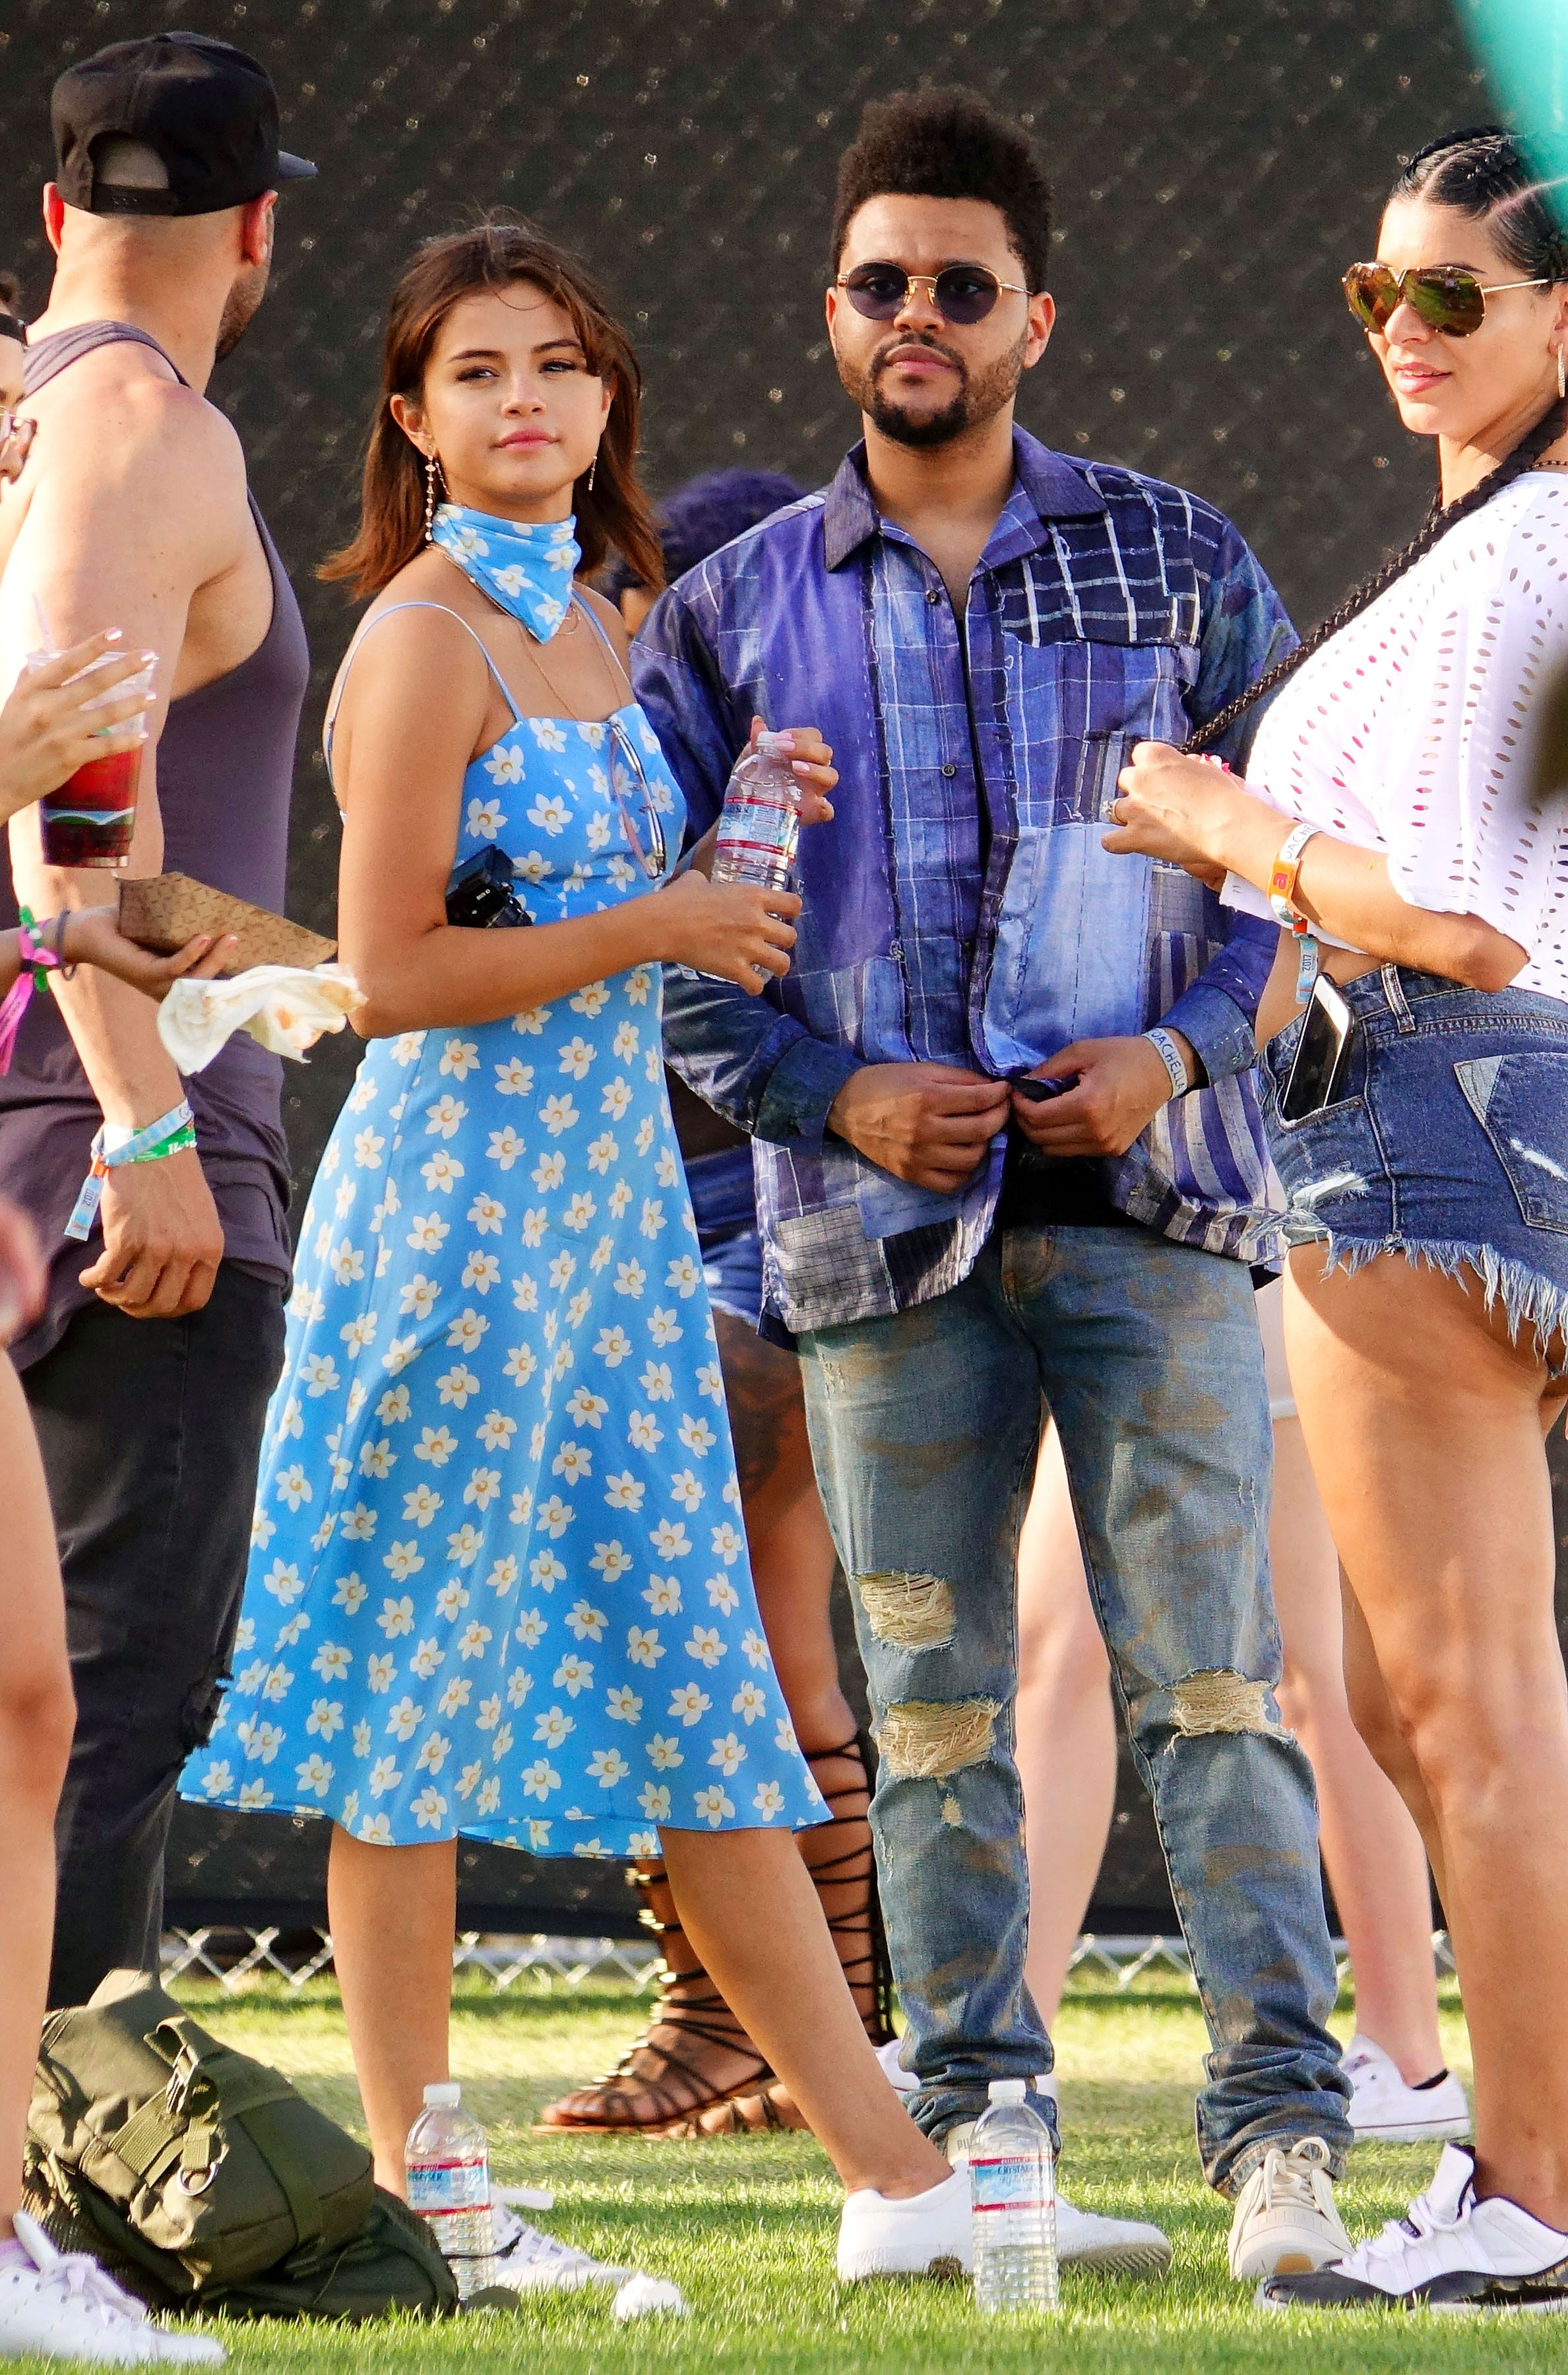 66922c9d5ad545 Our new New Year s resolution is to channel Selena Gomez at Coachella in  our everyday life! The singer looked stunning while attending the annual  music ...